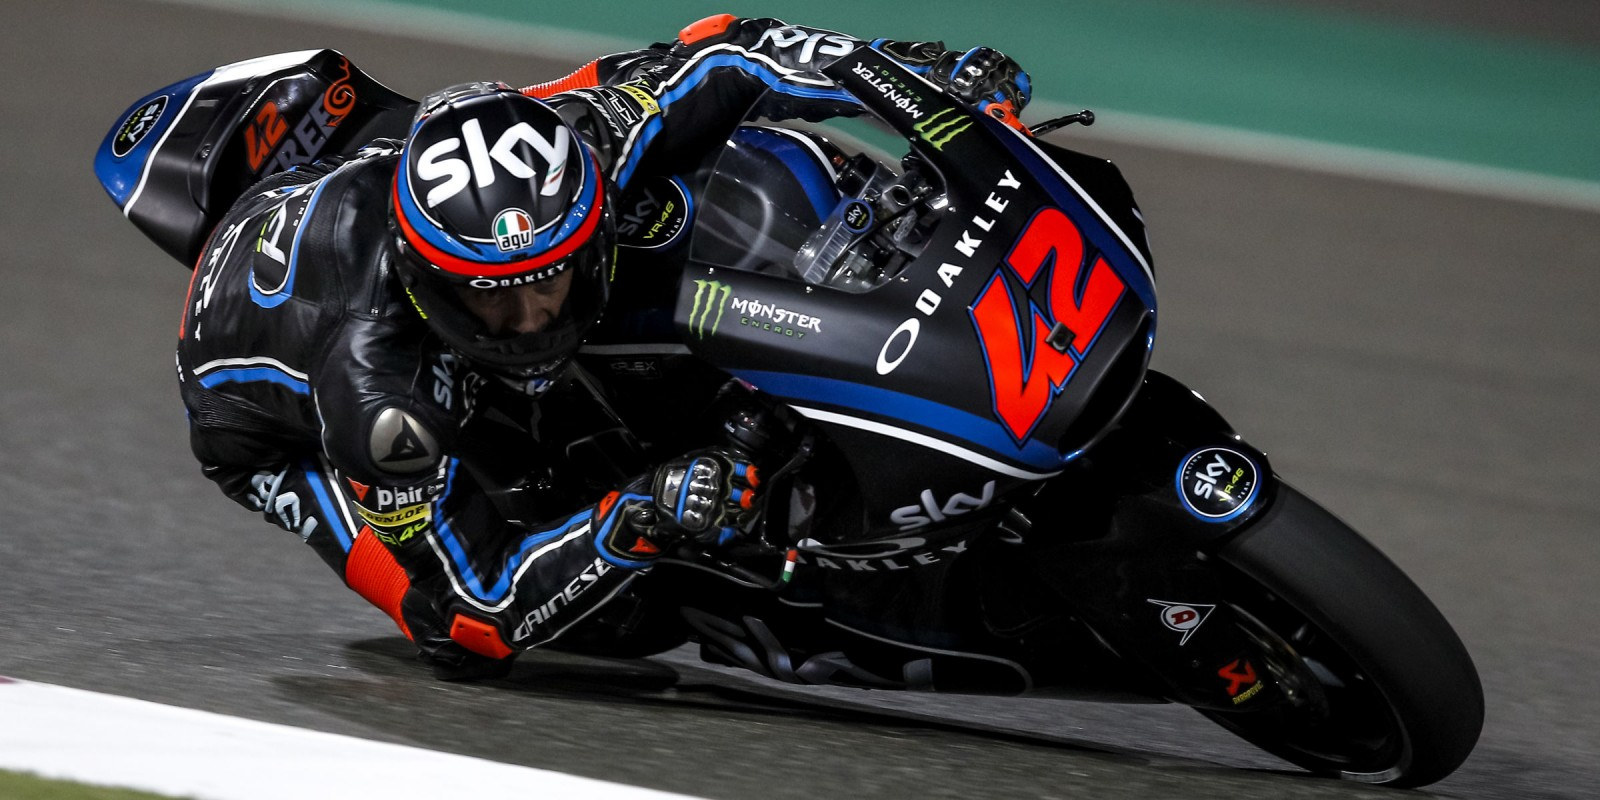 Francesco Bagnaia at the 2017 Grand Prix of Qatar